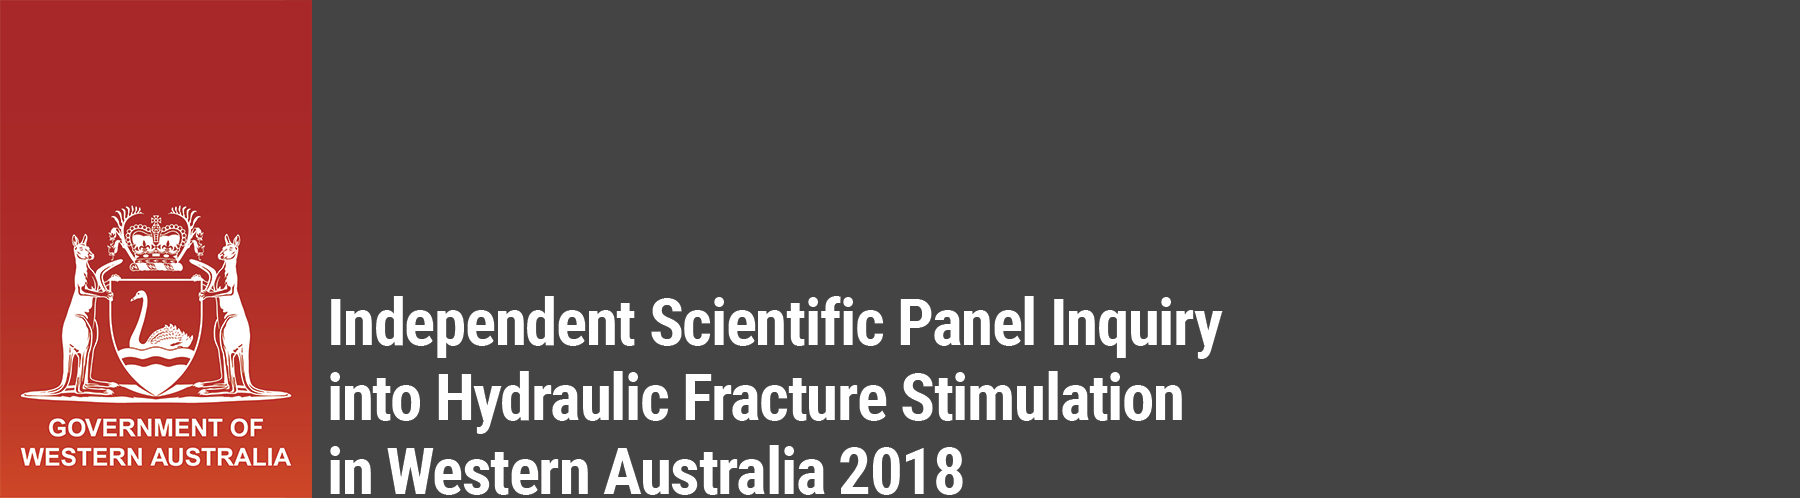 Independent Scientific Panel Inquiry into Hydraulic Fracture Stimulation in Western Australia 2017